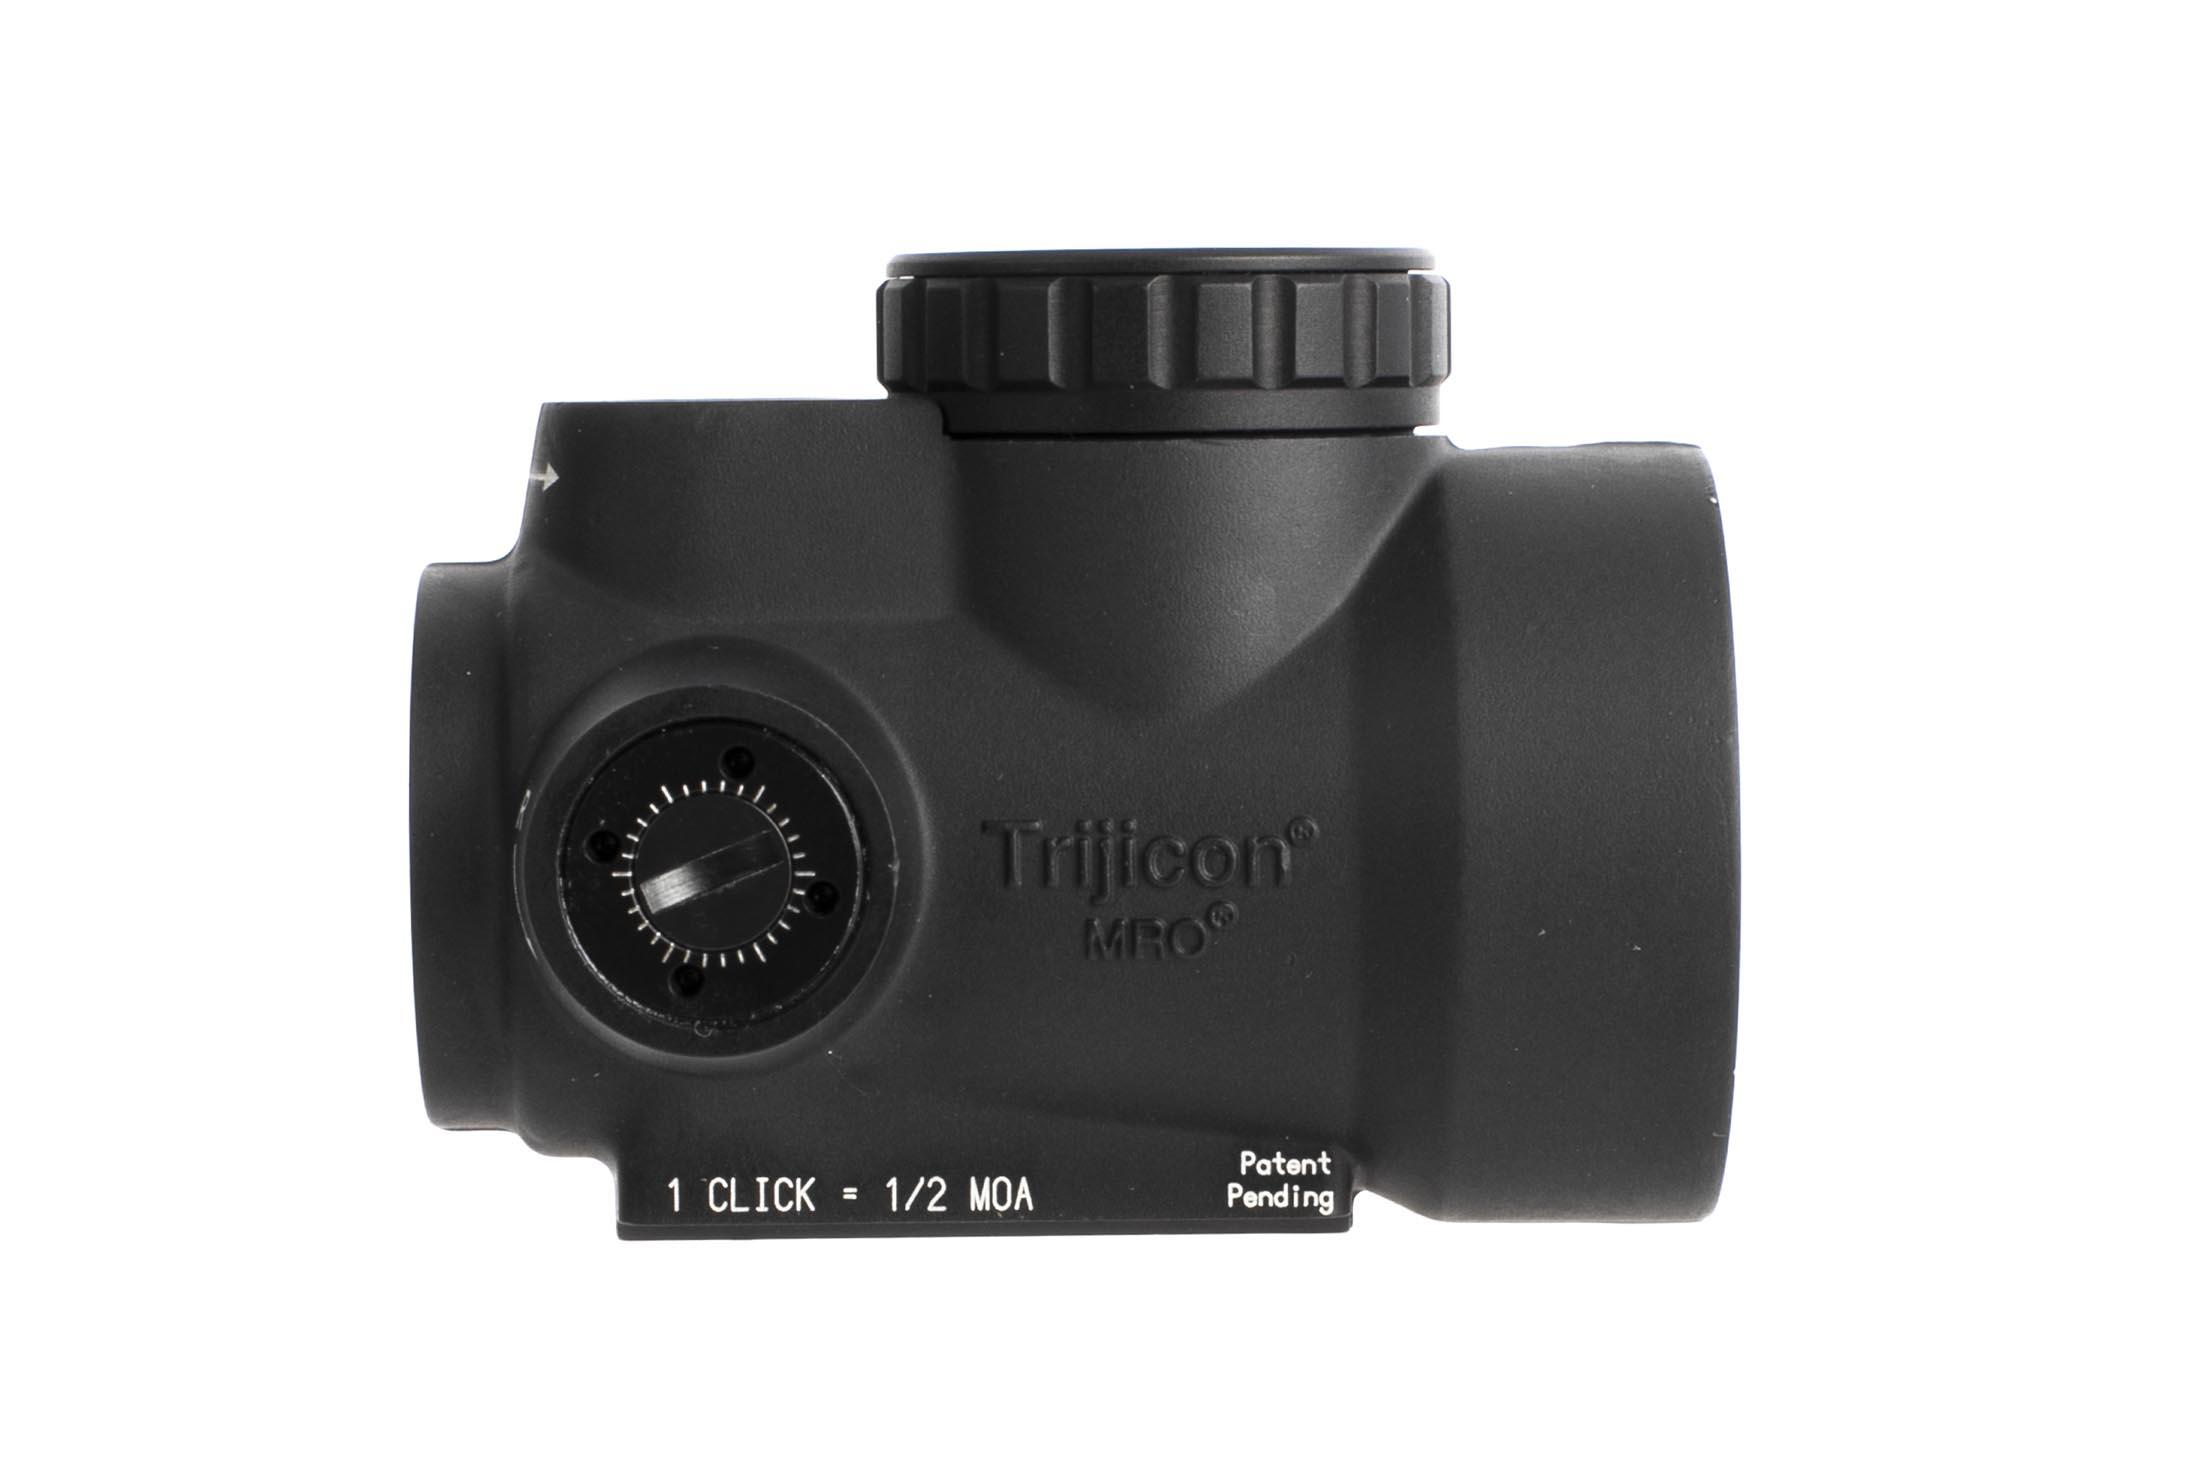 Trijicon MRO 2 MOA Green Dot reflex sight has shielded controls for enhanced durability and a heavy duty forged body, doesn't include mount www.primaryarms.com